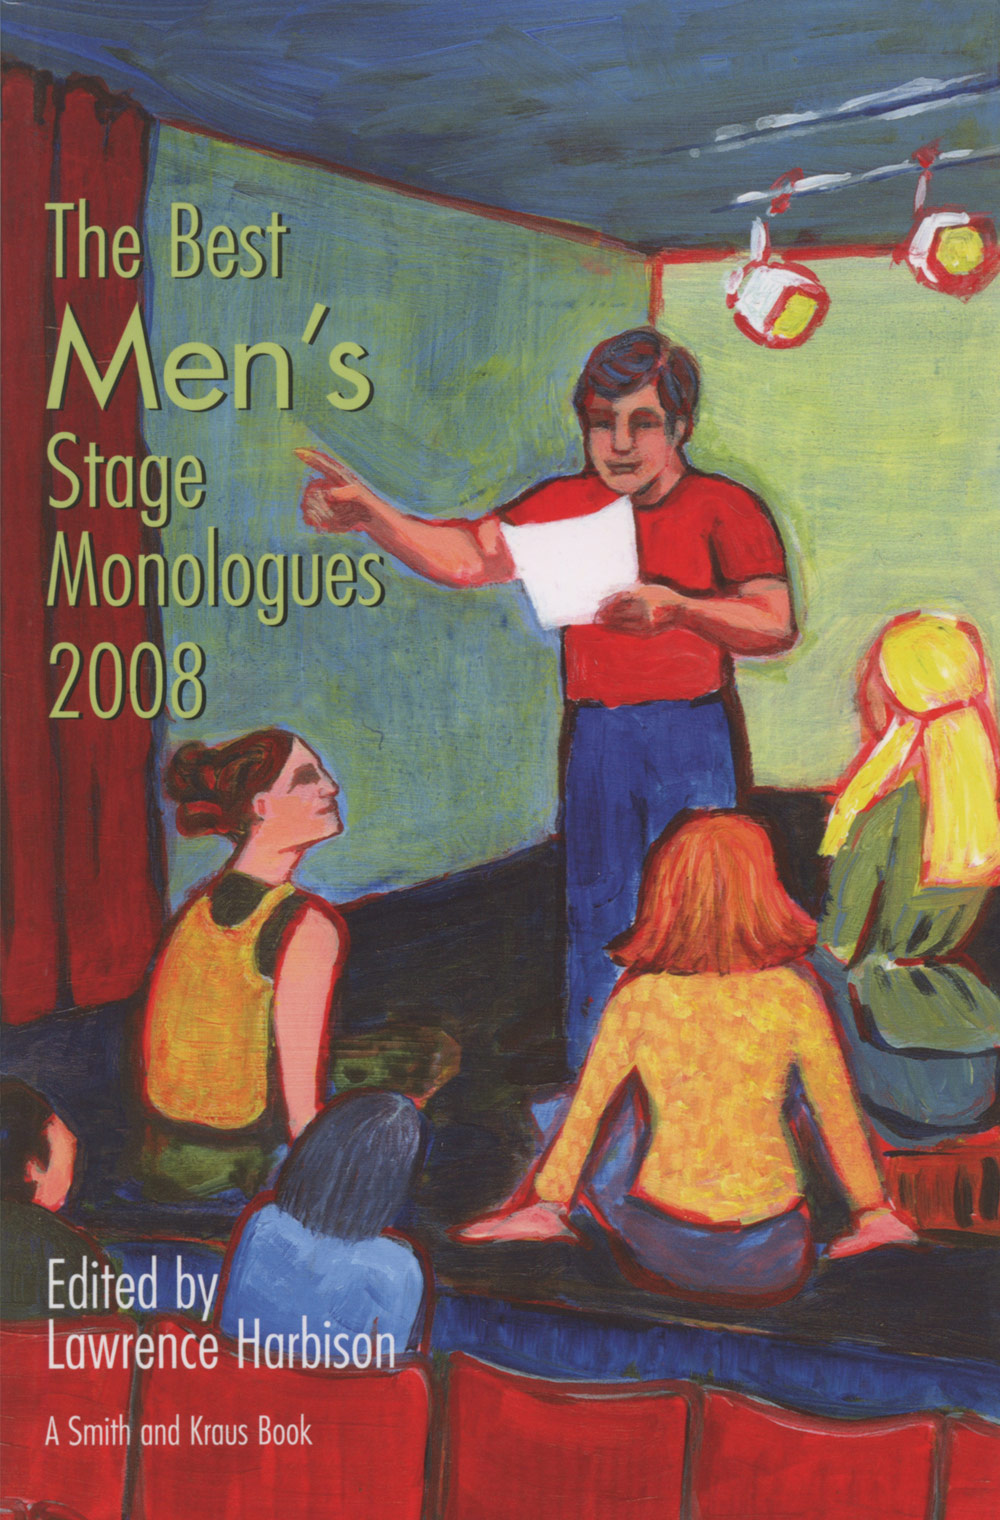 The Best Men's Stage Monologues of 2008